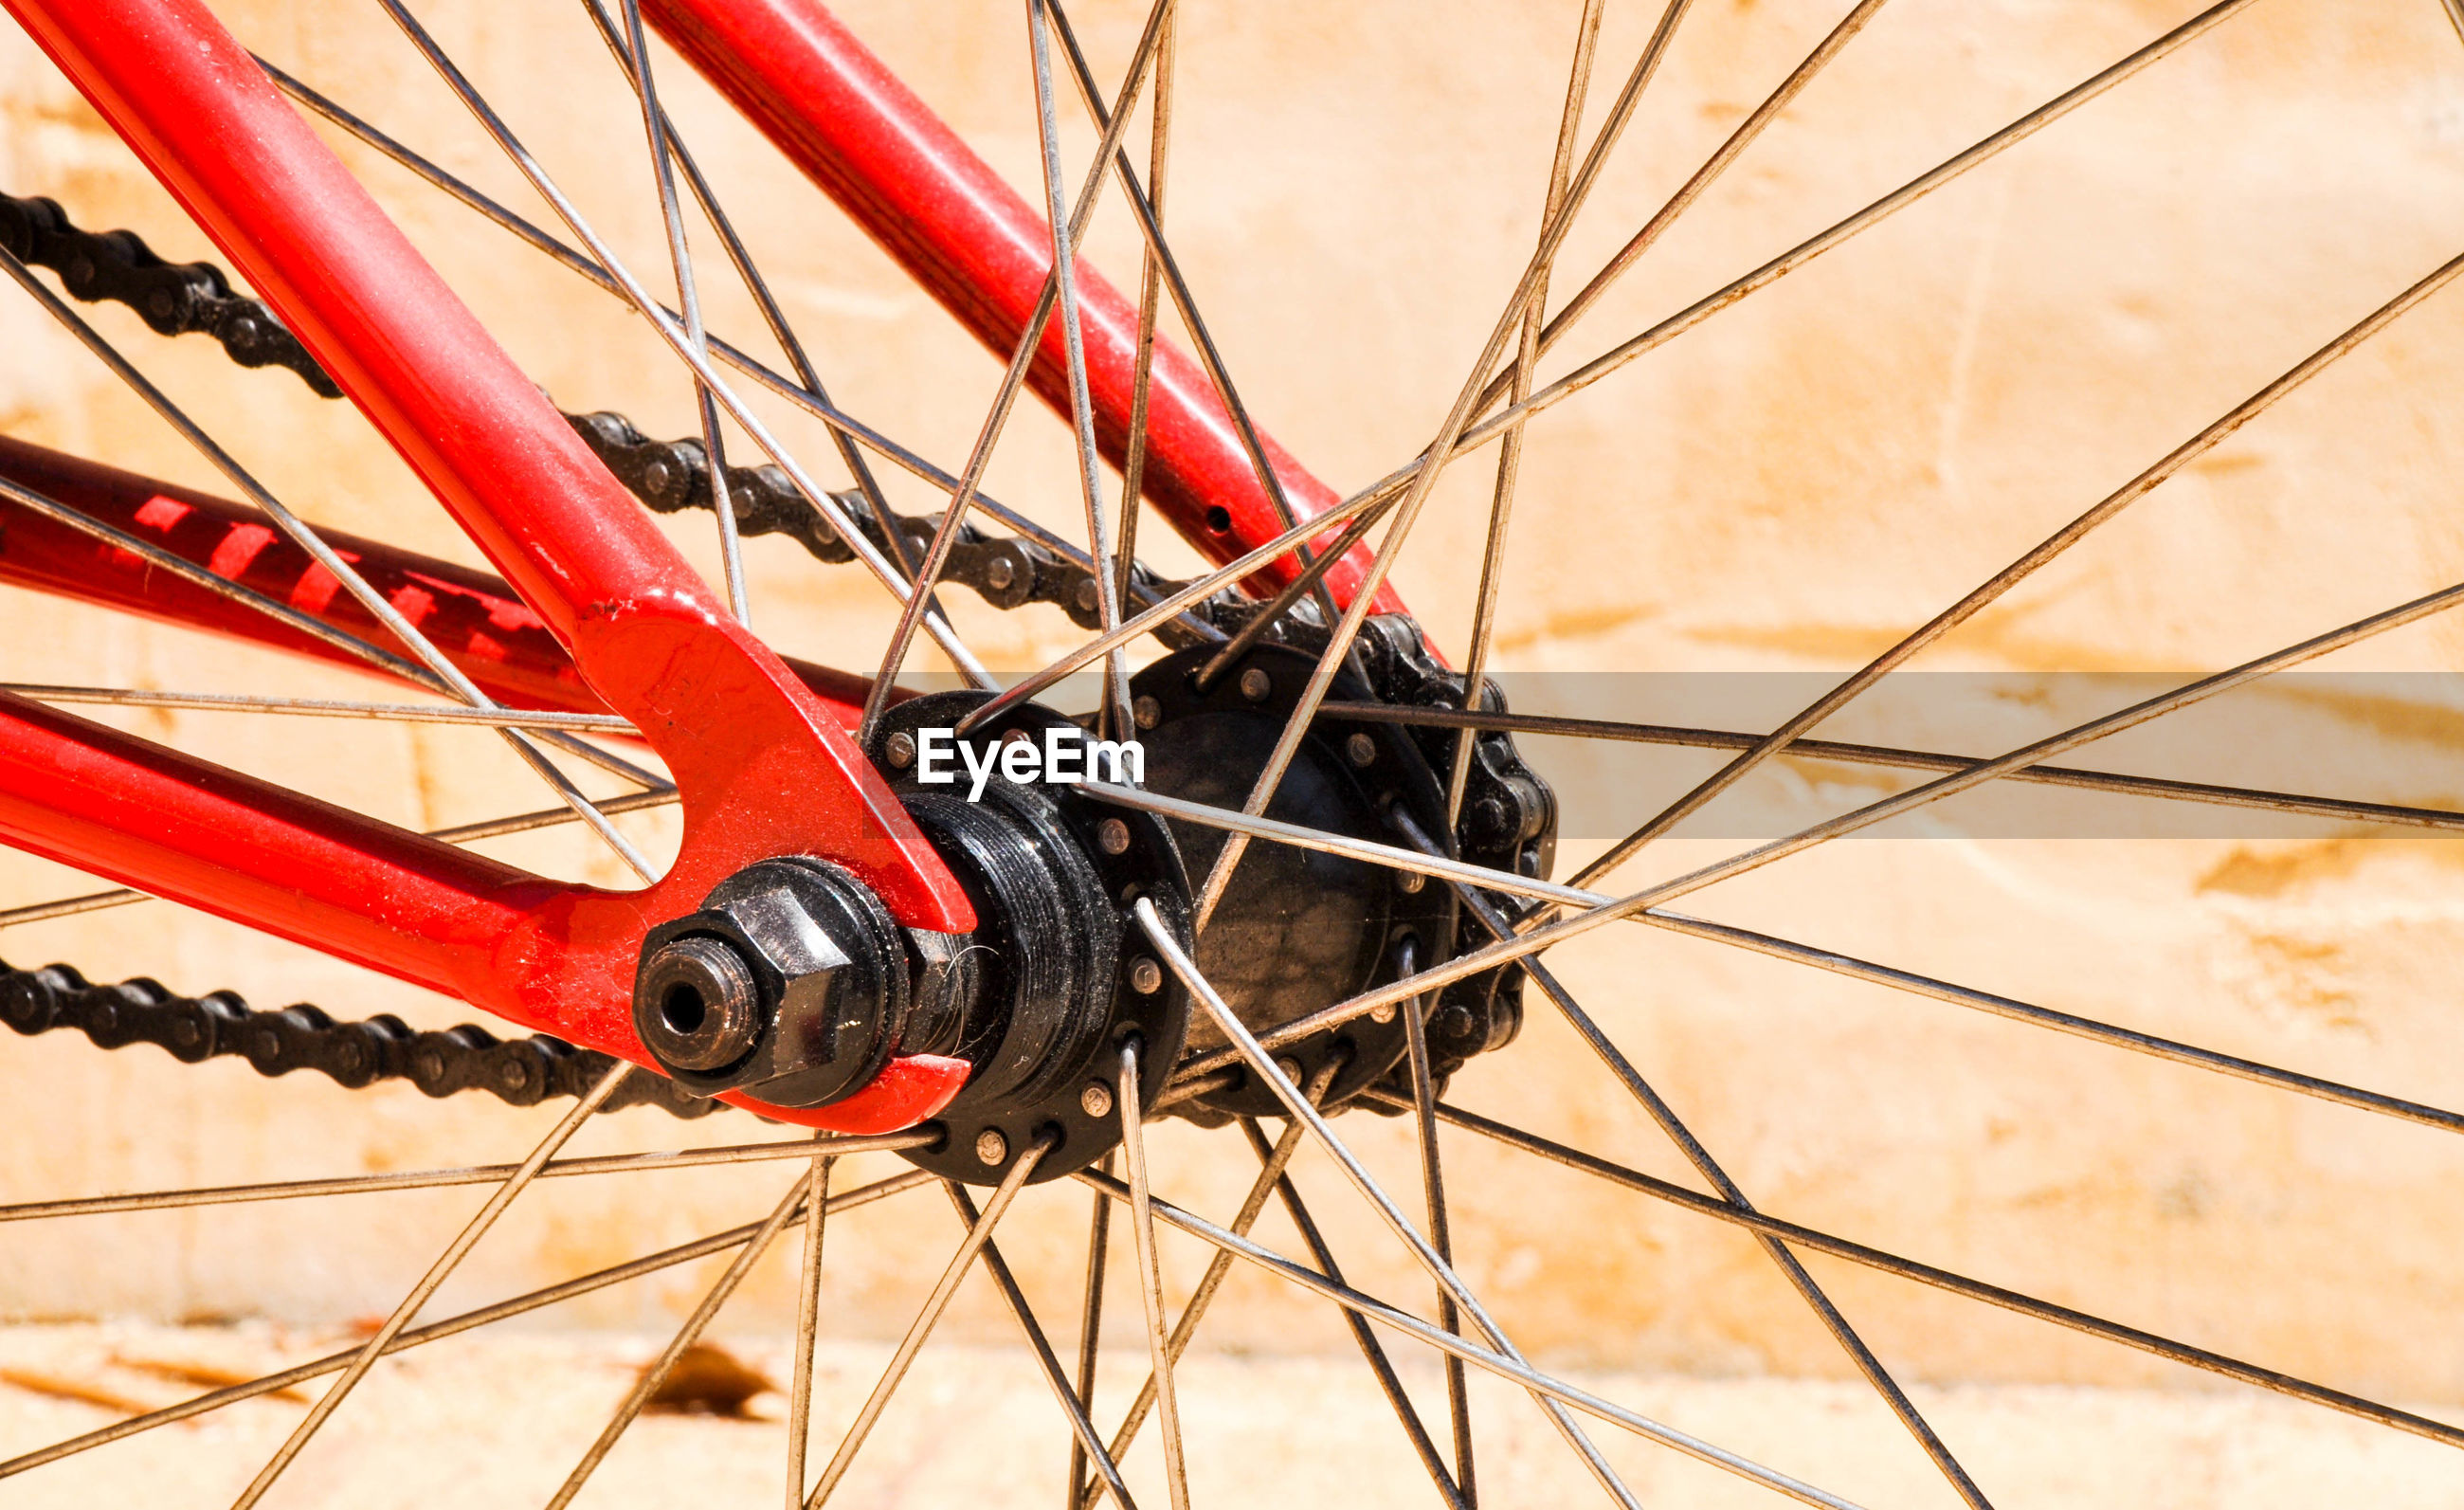 Cropped image of bicycle tire